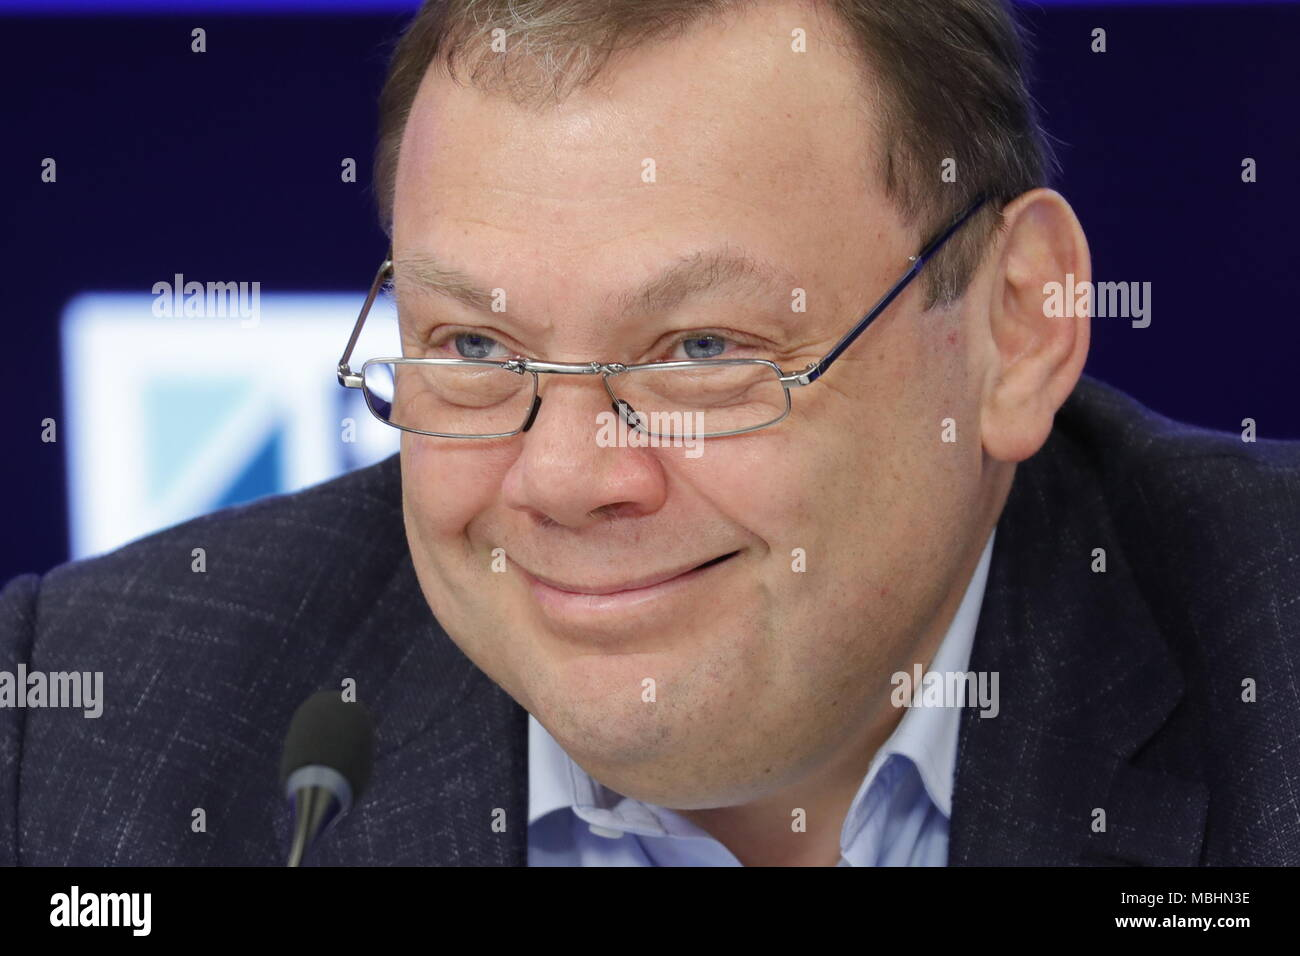 Moscow, Russia. 11th Apr, 2018. MOSCOW, RUSSIA - APRIL 11, 2018: Mikhail Fridman, chairman of the Supervisory Board at Alfa-Group, smiles during a press conference given by the organisers of the 2018 Alfa Future People festival of music and technology. Mikhail Japaridze/TASS Credit: ITAR-TASS News Agency/Alamy Live News - Stock Image